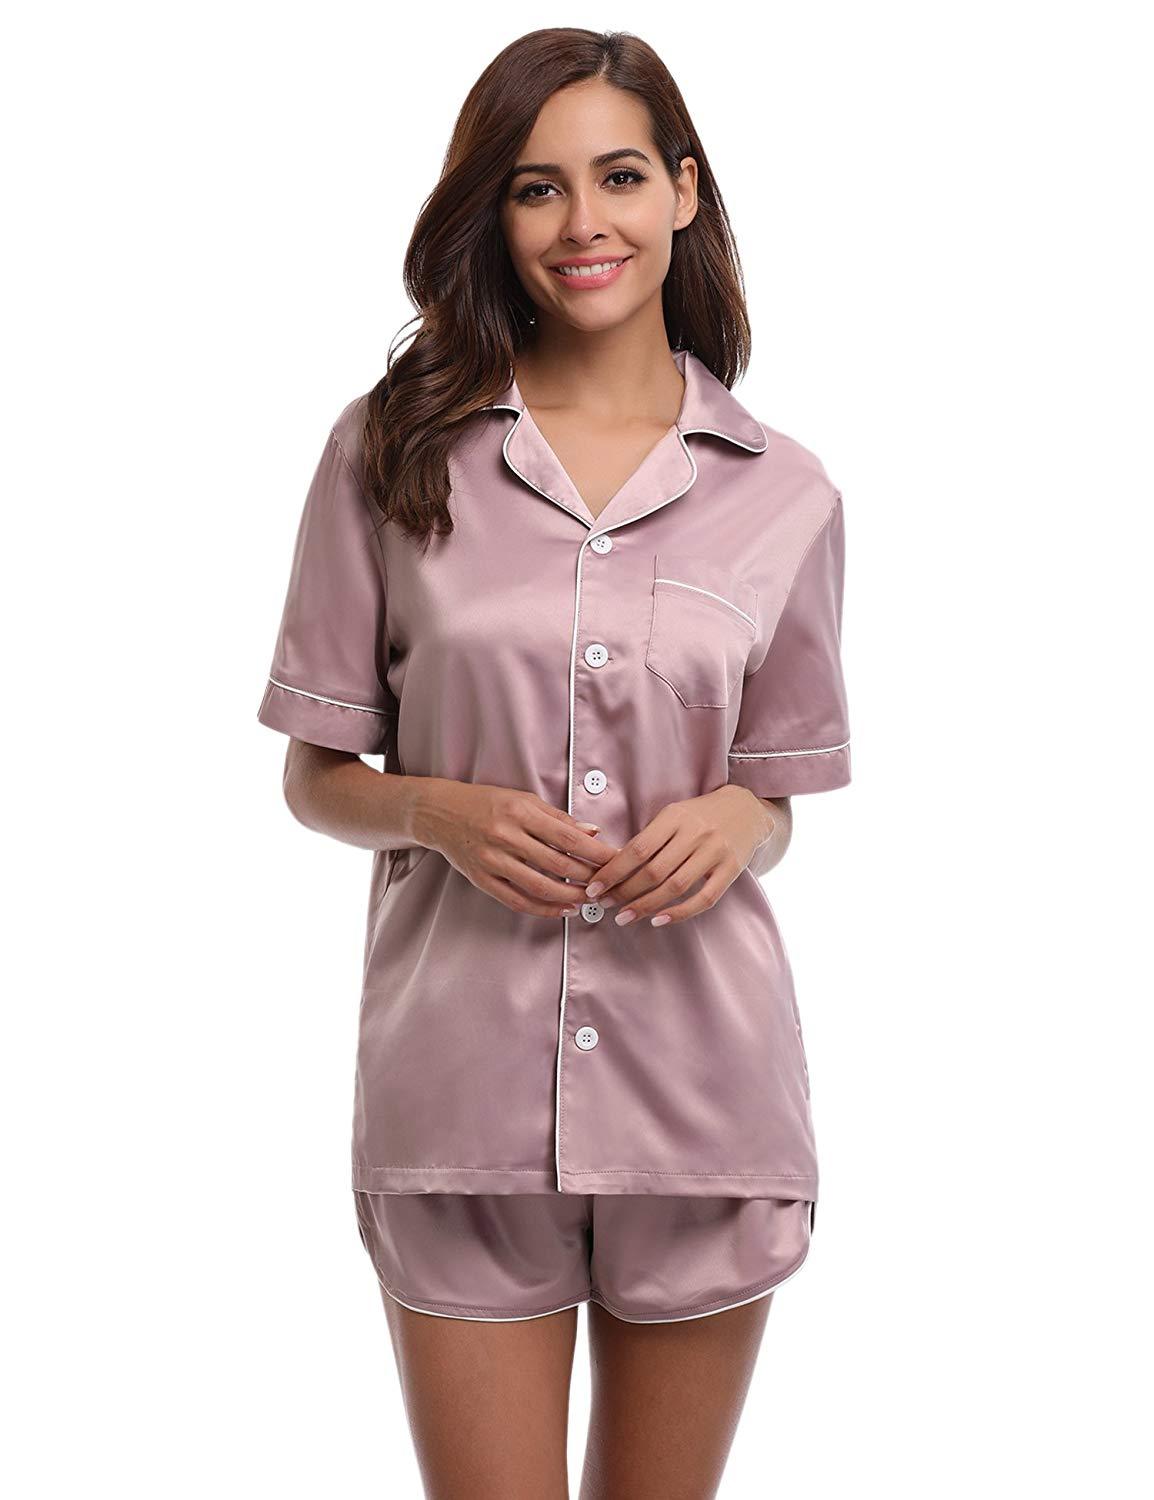 ad6db3cacc Get Quotations · Satin Pajamas Womens Short Set Silk Satin Sleepwear Short  Sleeves Pj Sets for Women